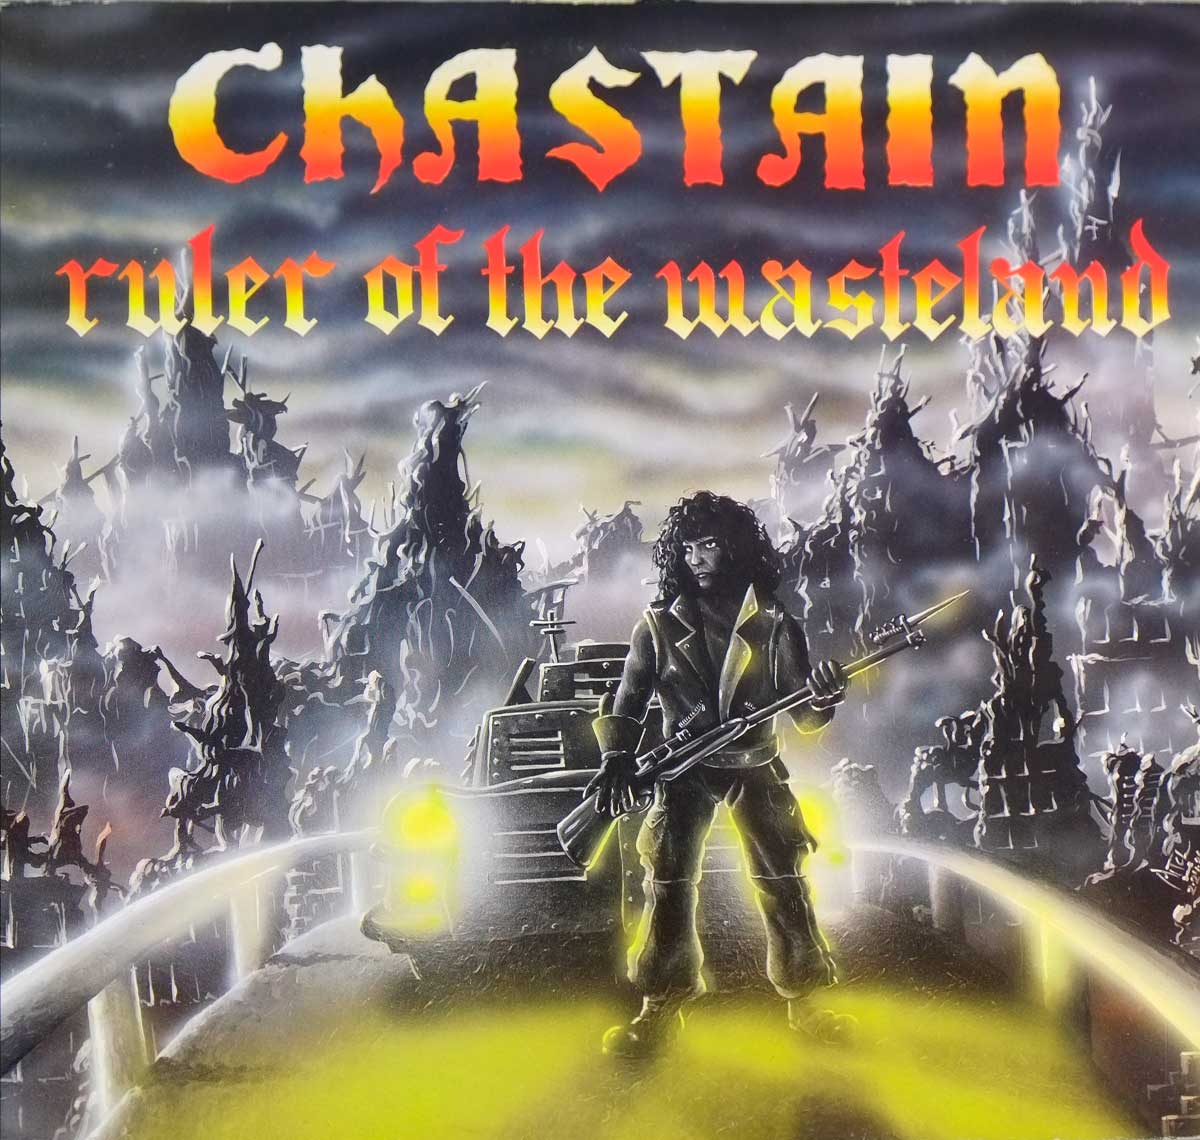 large photo of the album front cover of: CHASTAIN - Ruler Of The Wasteland